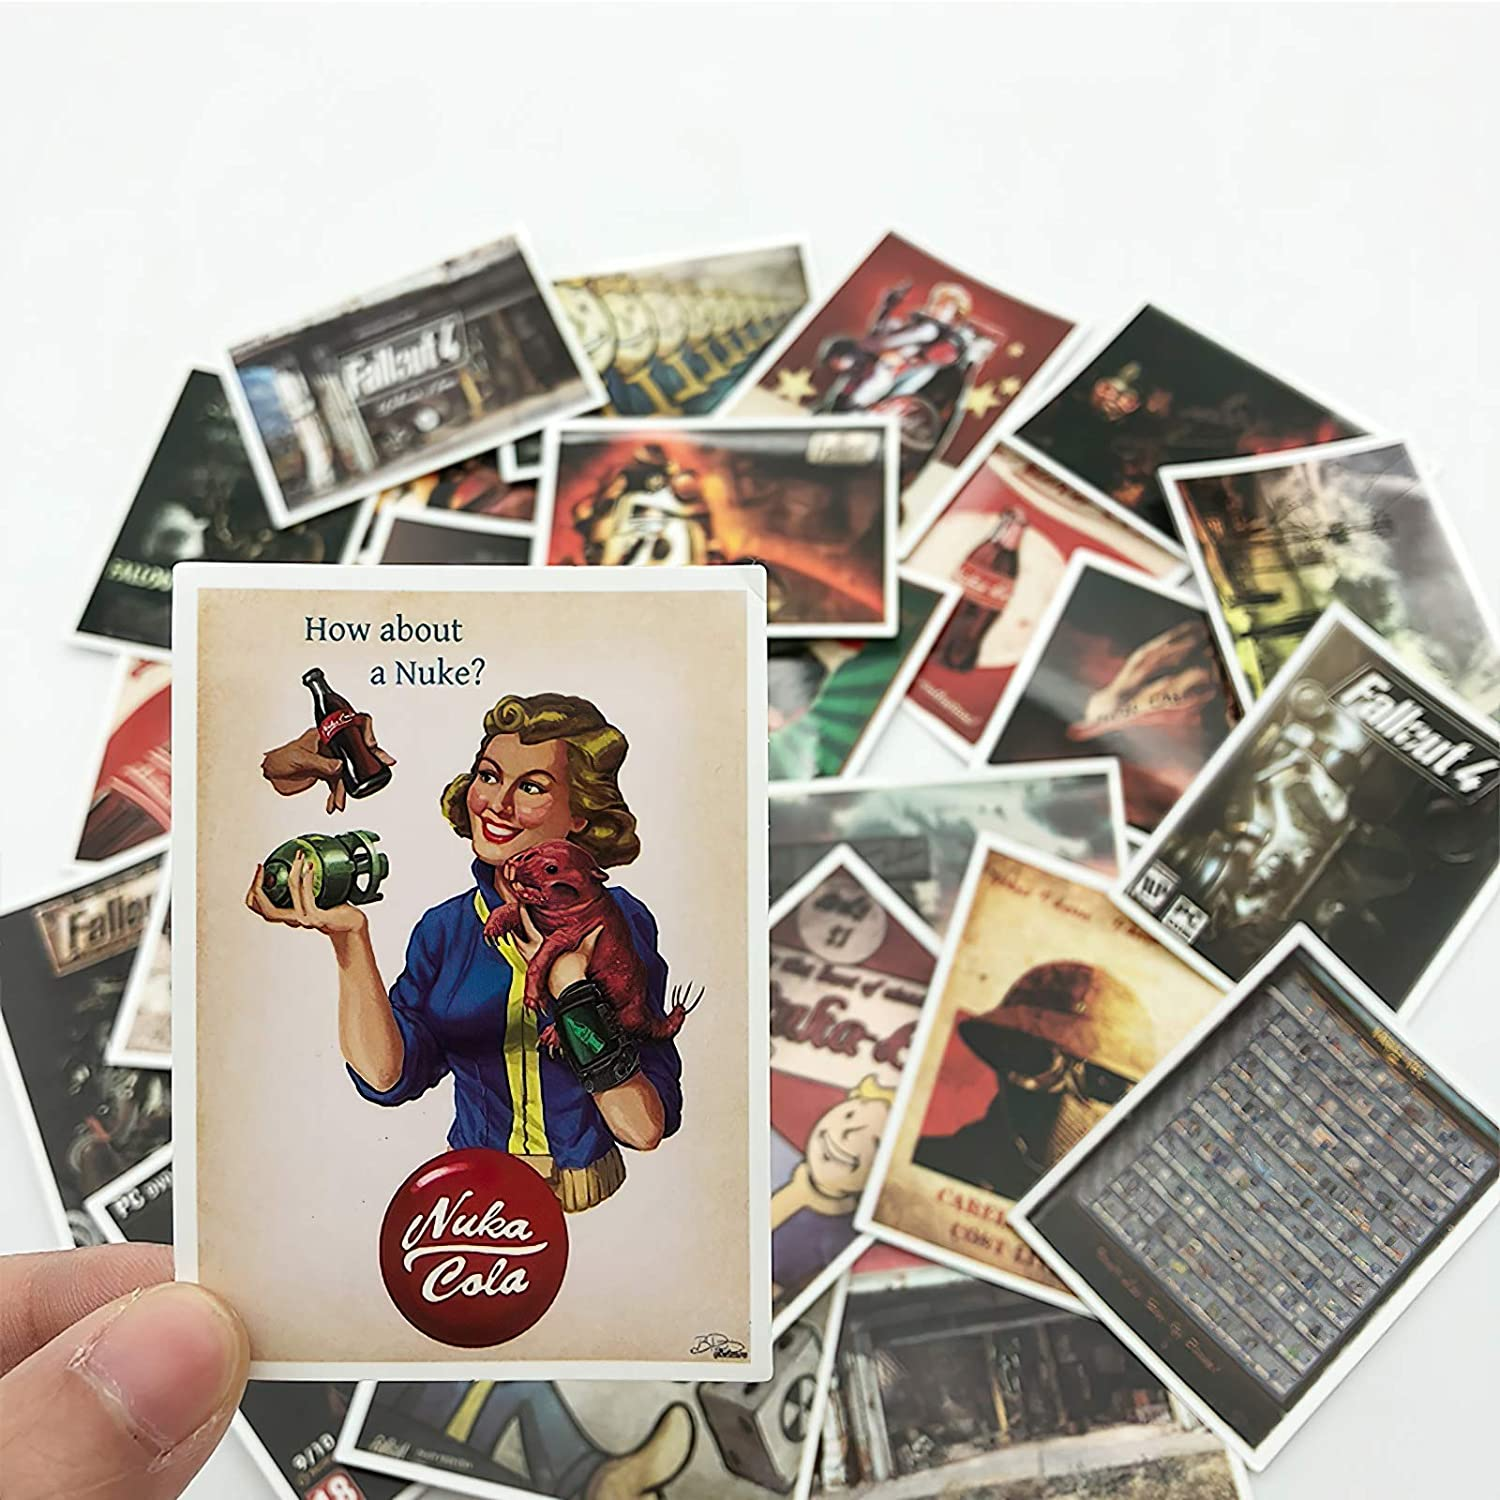 25 Pcs Fallout 3 4 Game Sticker for Luggage Skateboard Phone Laptop Moto Bicycle Wall Guitar Waterproof PVC Stickers